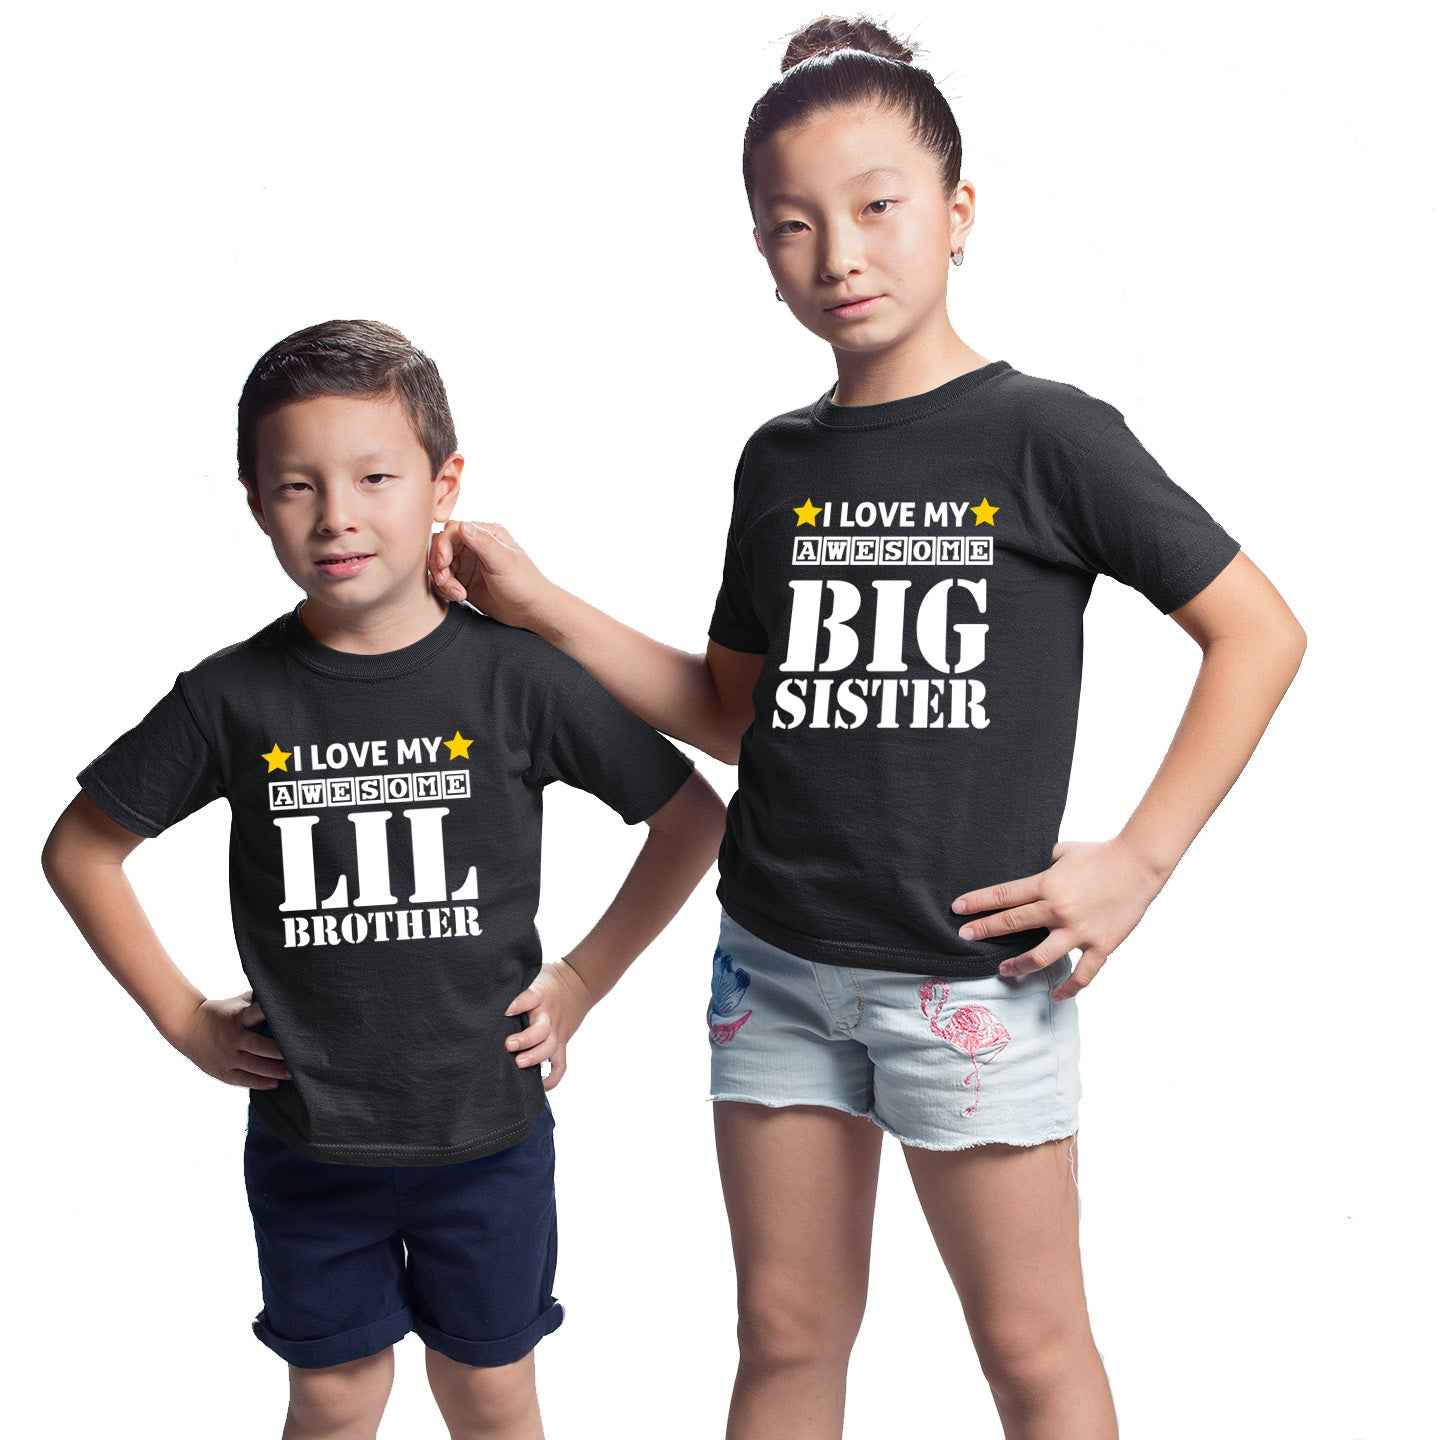 Sprinklecart I Love My Awesome Big Sister I Love My Awesome Lil Brother Printed Black Matching Cotton T Shirts